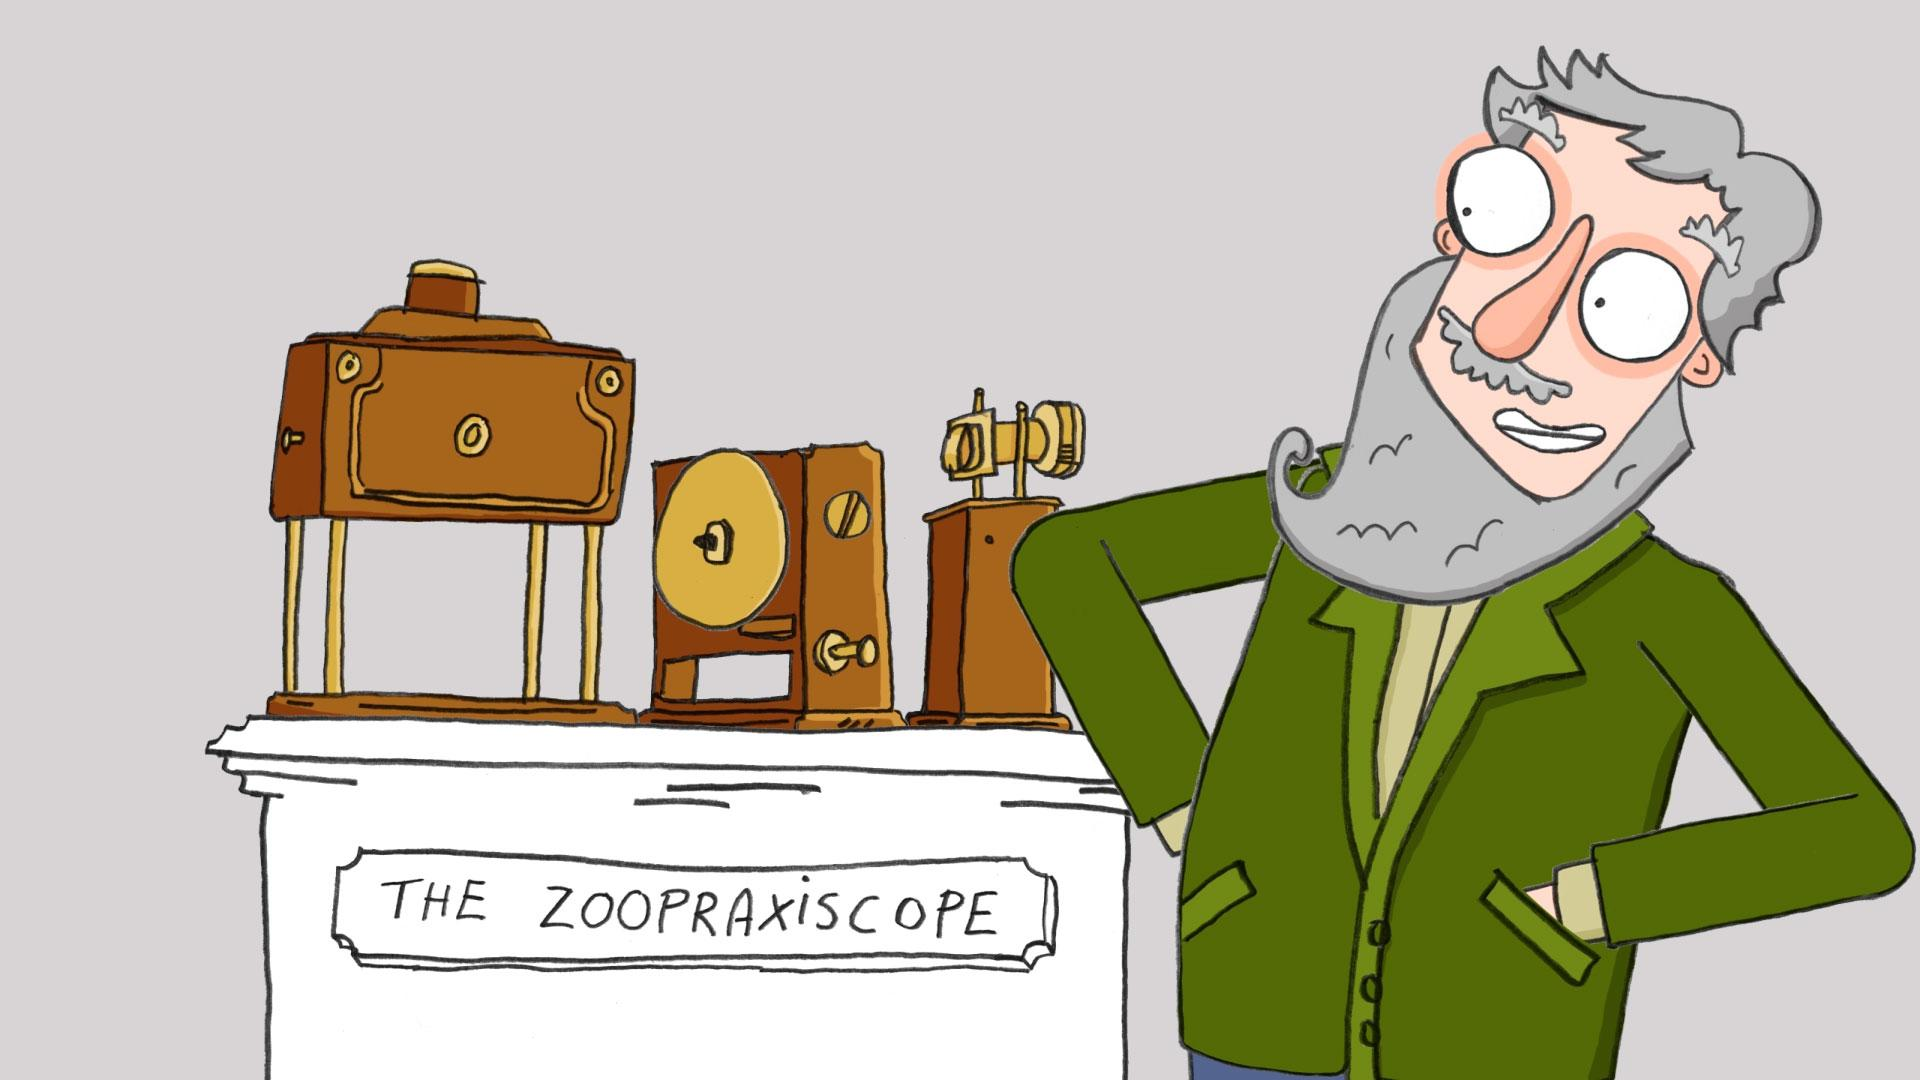 An animated drawing of Muybridge stood next to his zoopraxiscope.